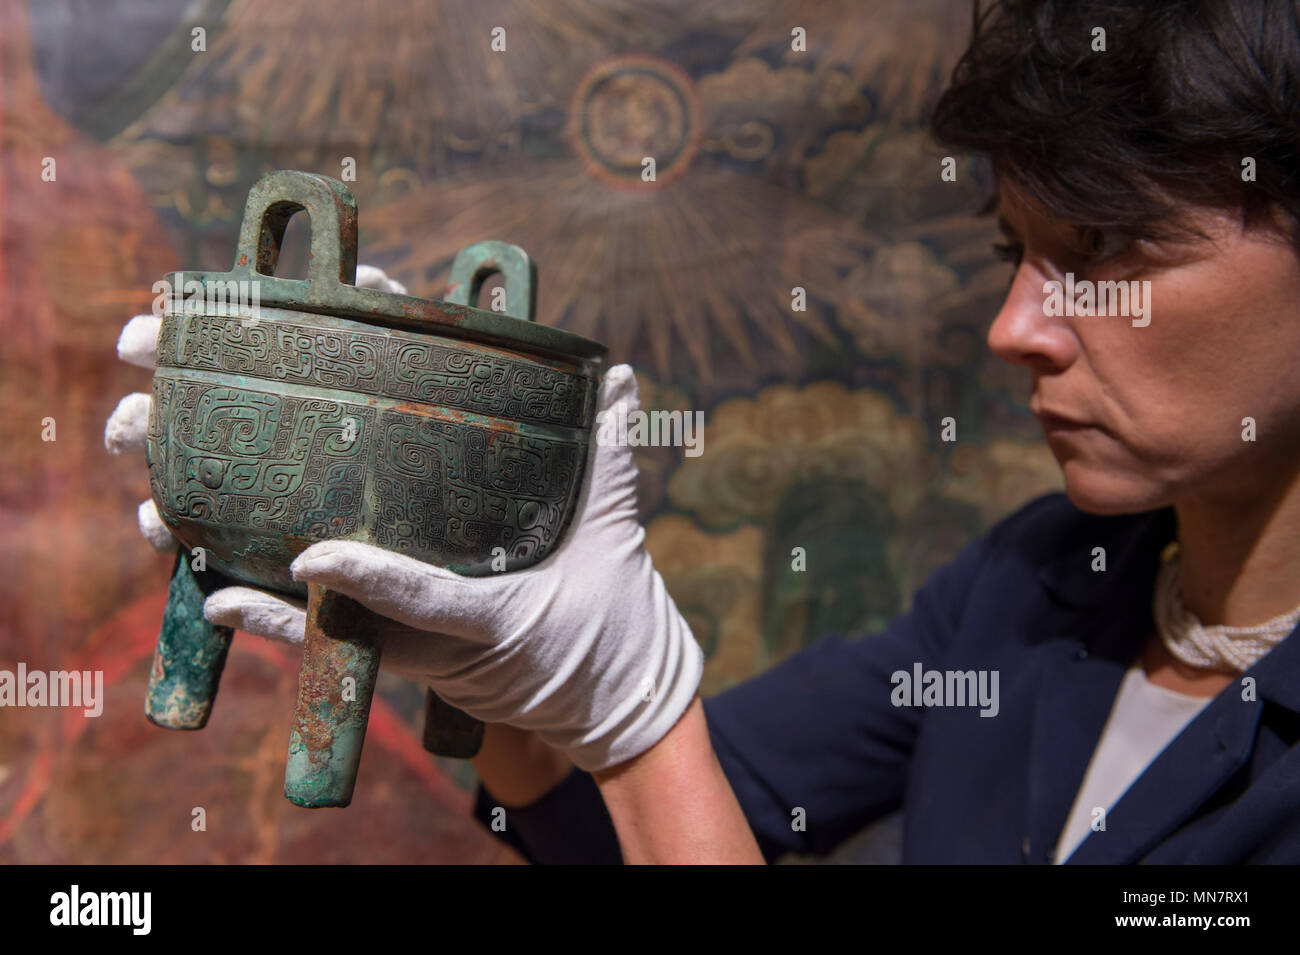 Bonhams, New Bond Street, London, UK. 15 May, 2018.  Bonhams Chinese Art expert holds a very rare archaic bronze ritual food vessel, Ding, Late Shang Dynasty (12th/11th c.) at Bonhams Fine Chinese and Fine Japanese Art Sale preview, estimated £180,000-240,000. Credit: Malcolm Park/Alamy Live News. - Stock Image